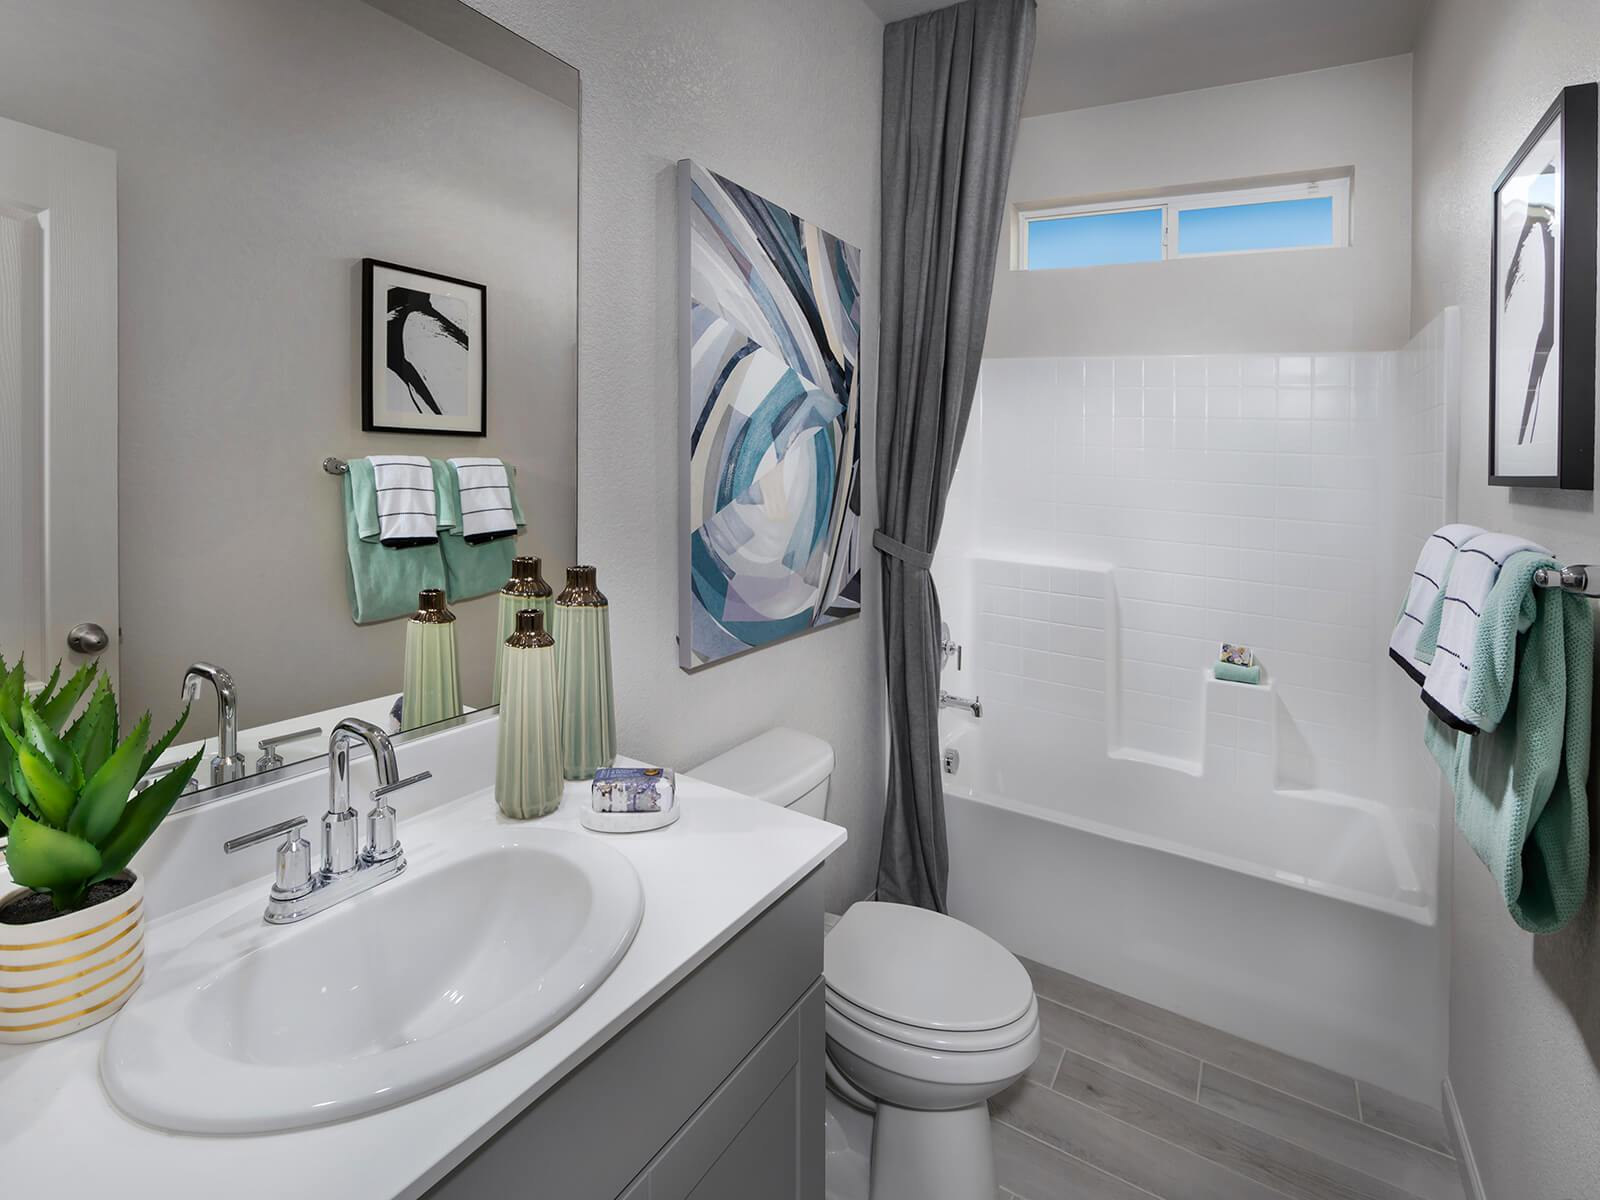 Bathroom featured in the Residence 1 By Meritage Homes in Oakland-Alameda, CA